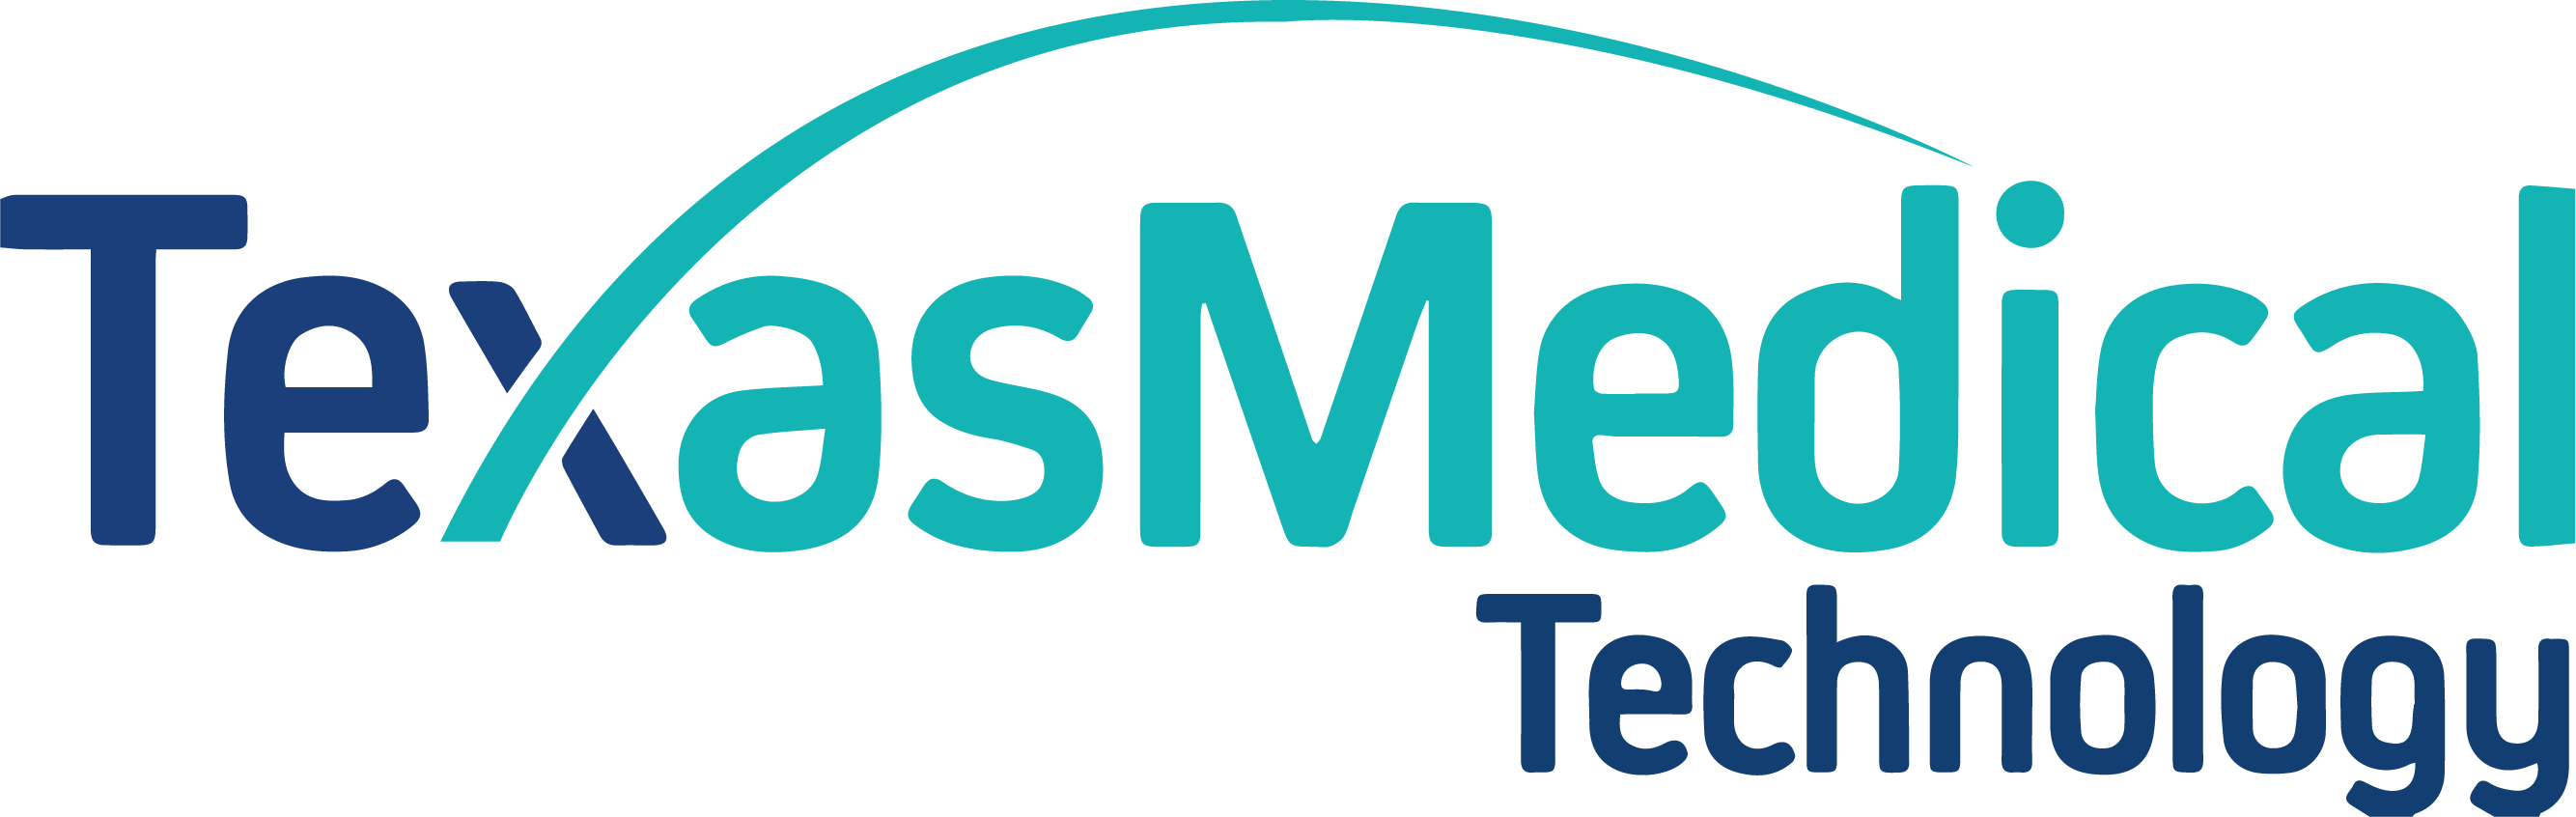 Image result for Texas Medical Technology